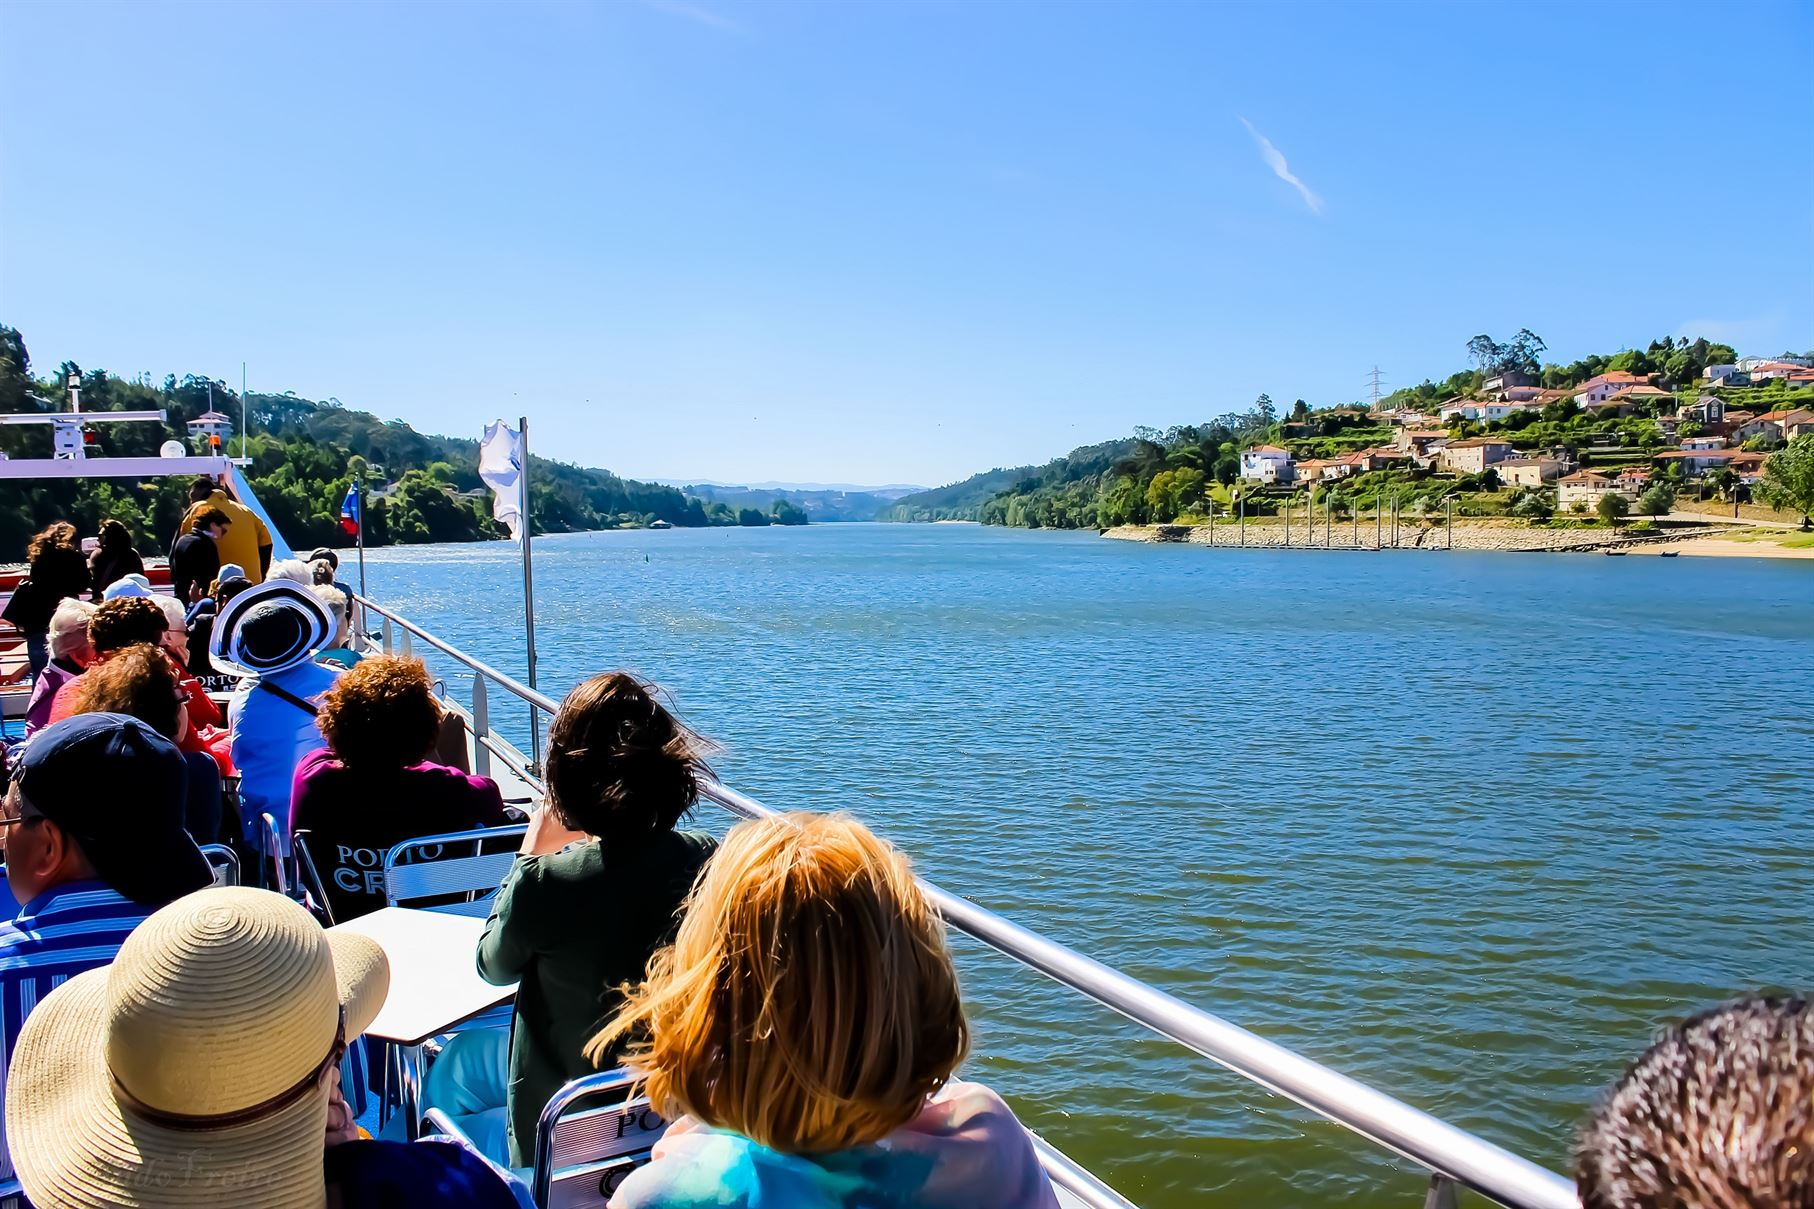 St. Martin's Cruise in the Douro River - Living Tours